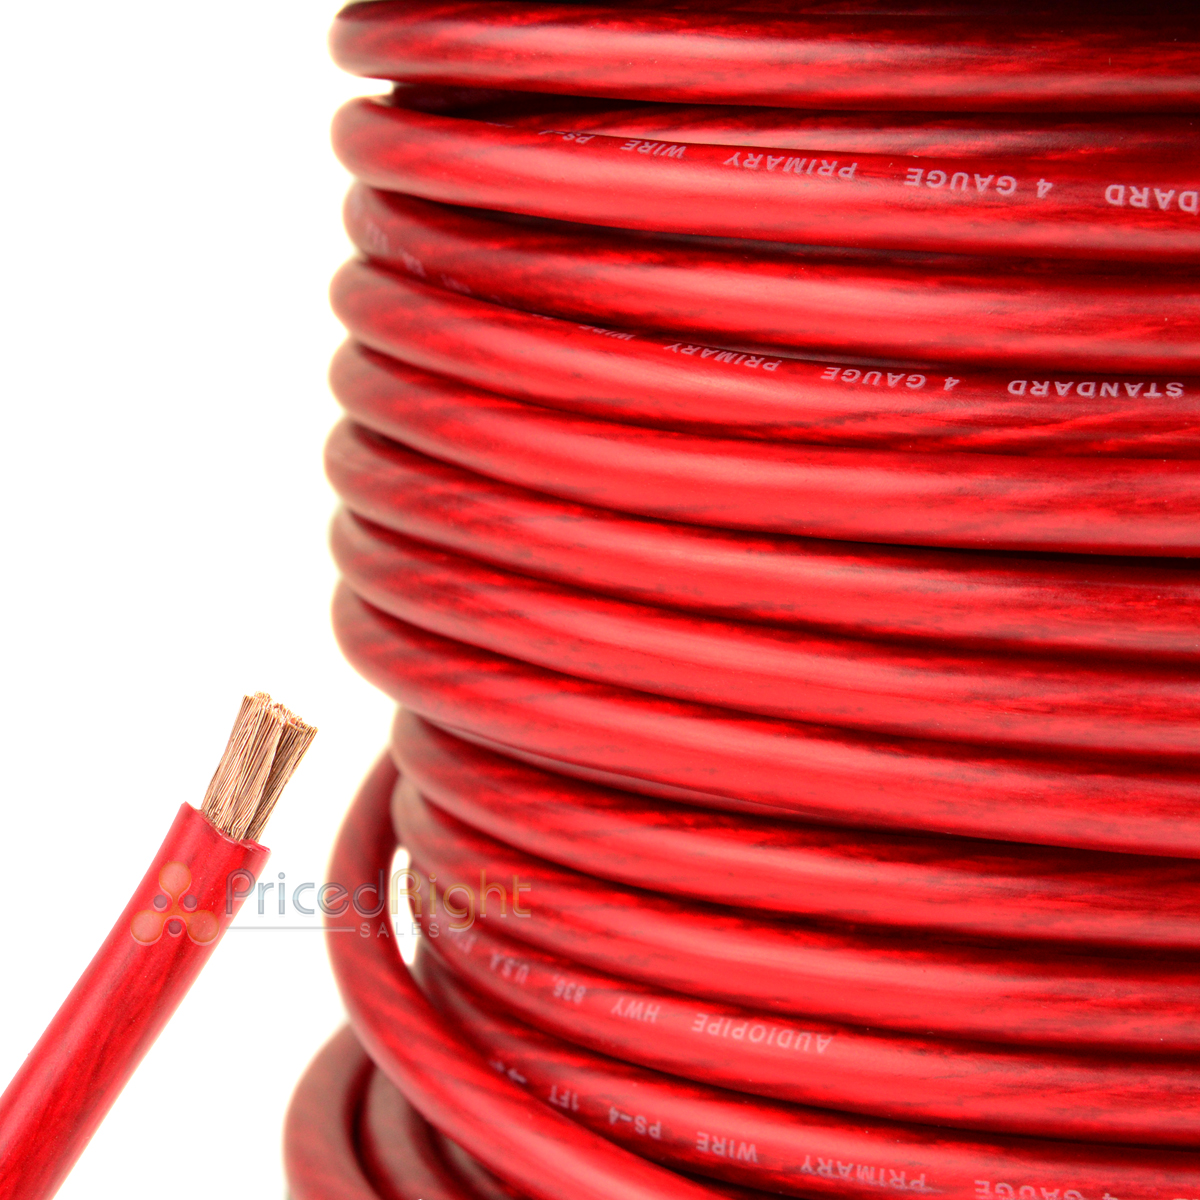 hight resolution of details about 25 ft 4 gauge red power wire super flexible cable car audio ground stranded